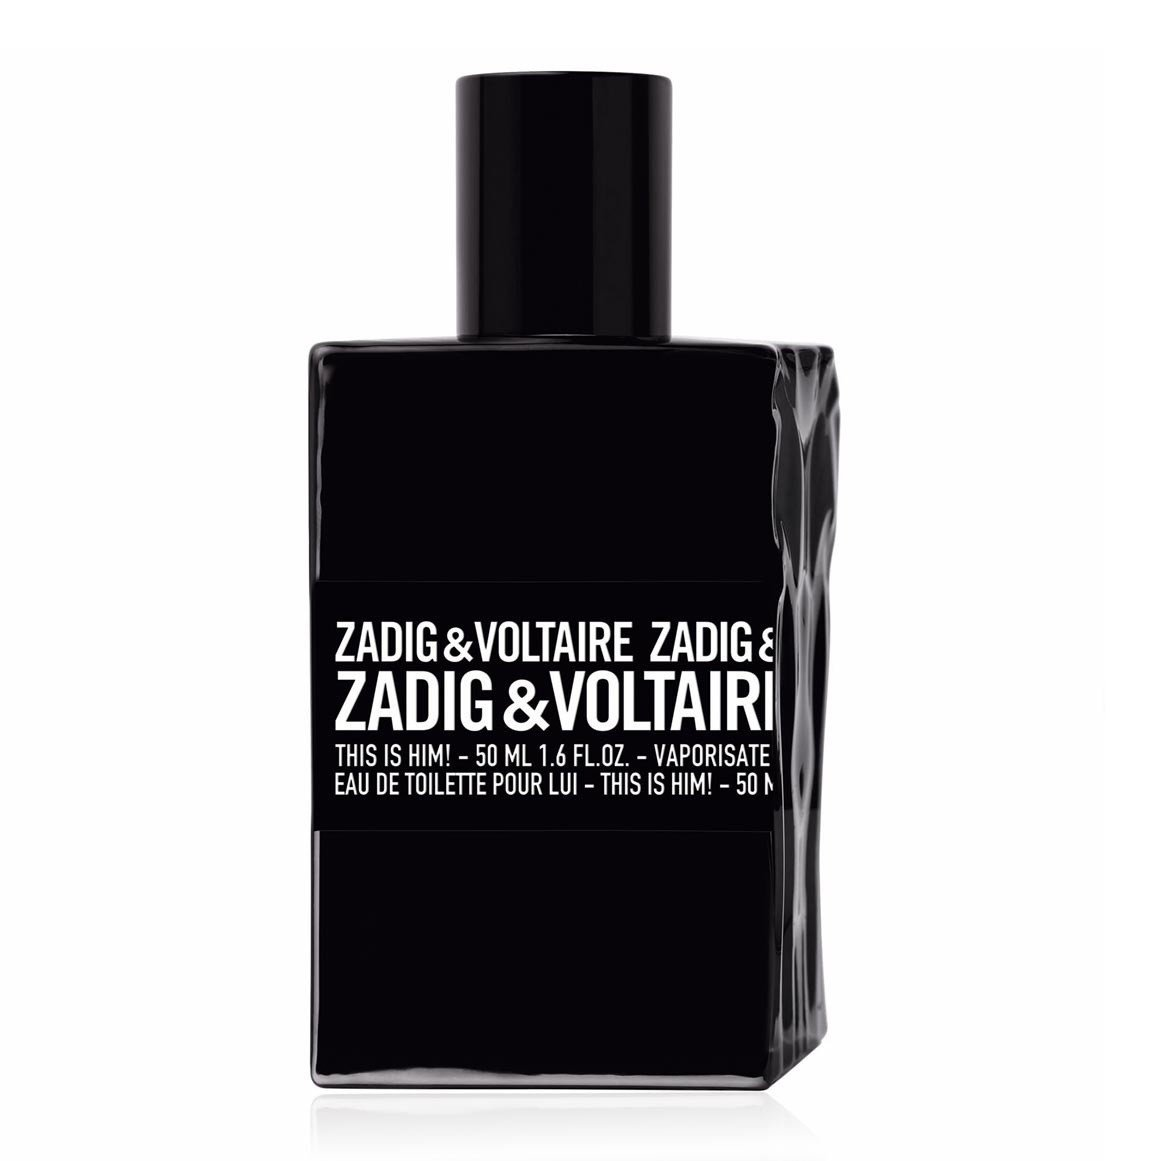 Tualetinis vanduo Zadig & Voltaire This is Him! EDT vyrams 50 ml